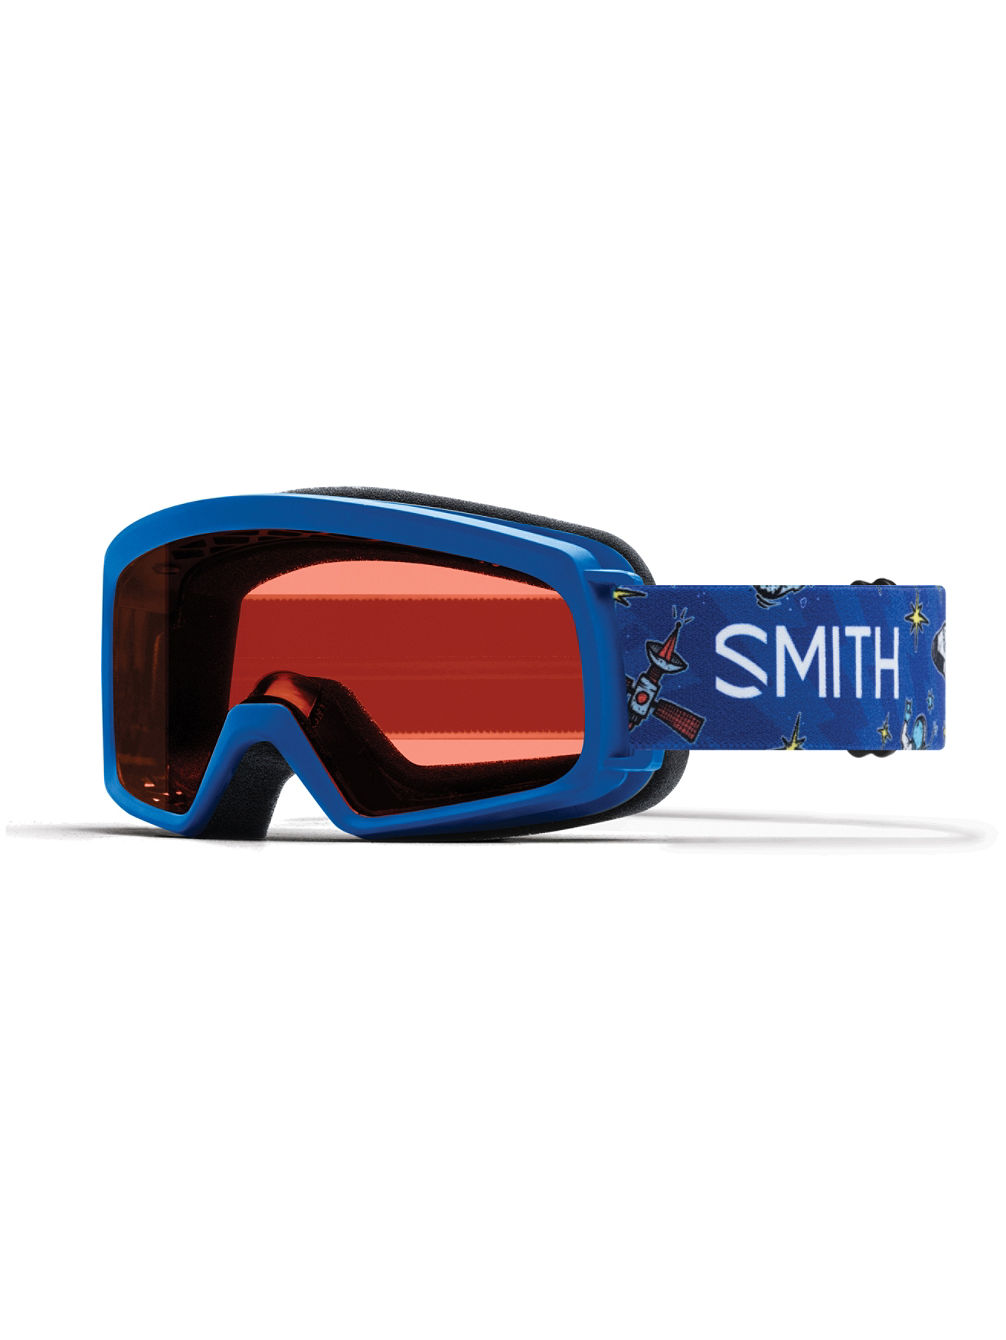 Rascal Cobalt Shuttles Youth Goggle